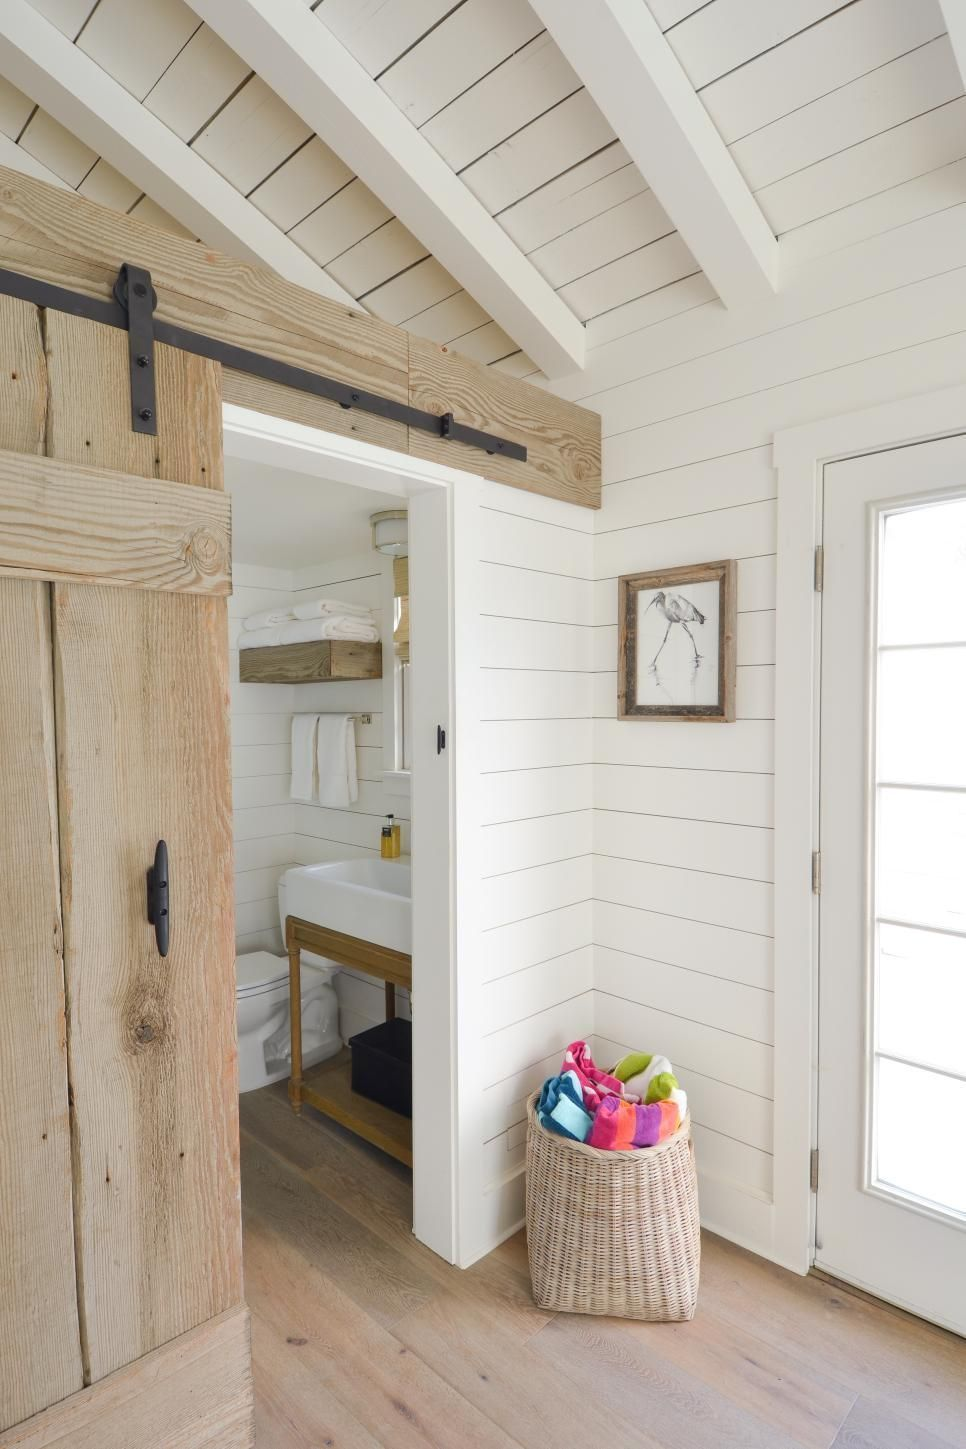 Whitewashed Wood Panels Cover The Walls And Ceiling Of This Cottage